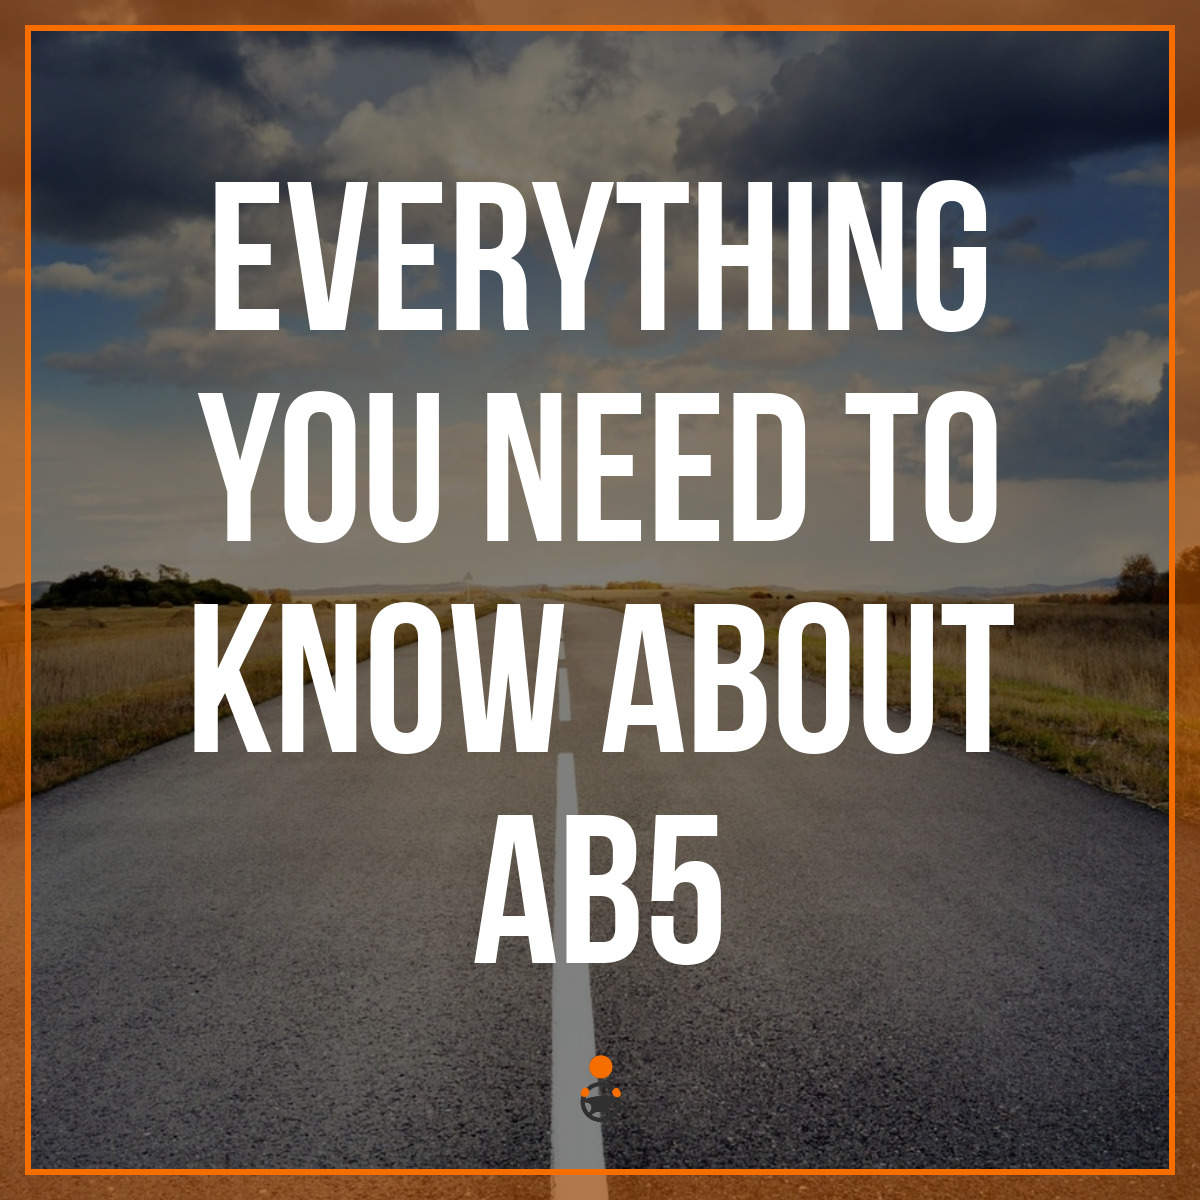 Everything You Need to Know About AB5